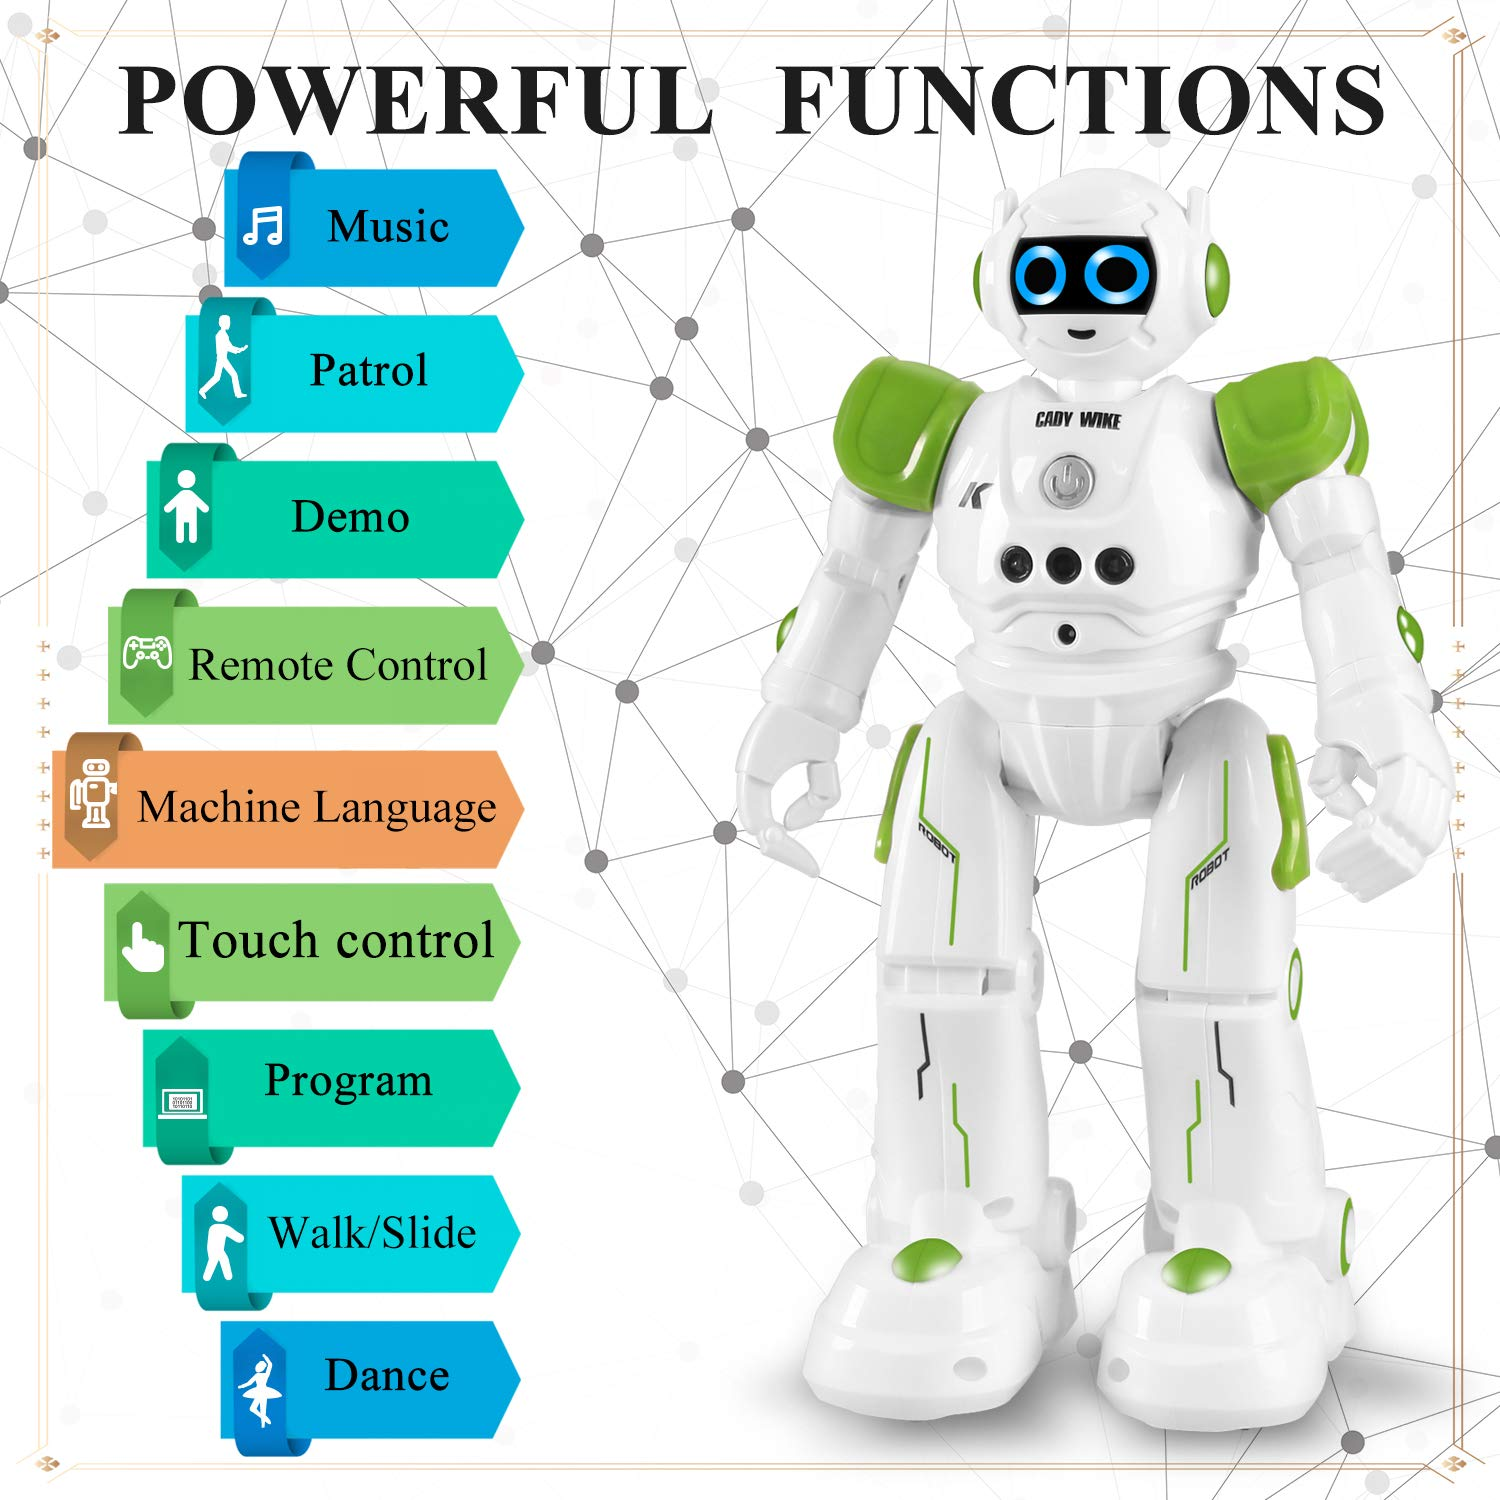 Smart Robot Kit with Remote Control /& Gesture Control Perfect Robotics Gifts for Boys Girls Learning Programmable Walking Dancing Singing IHBUDS Robot Toy for Kids